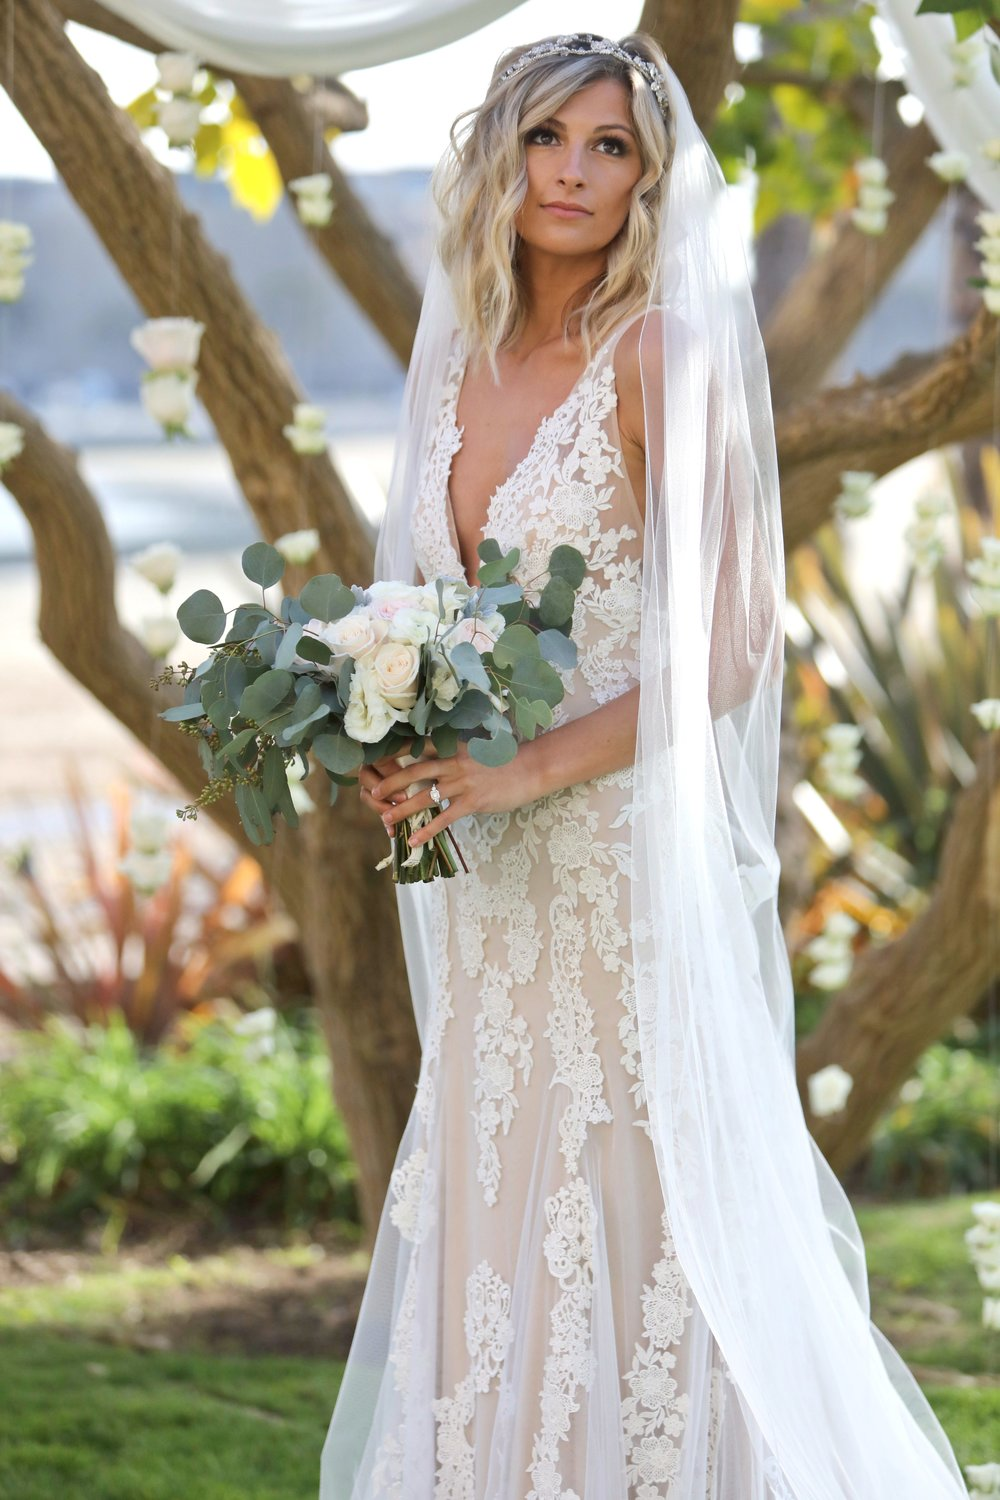 Marina Del Ray bridal portraits before her ceremony